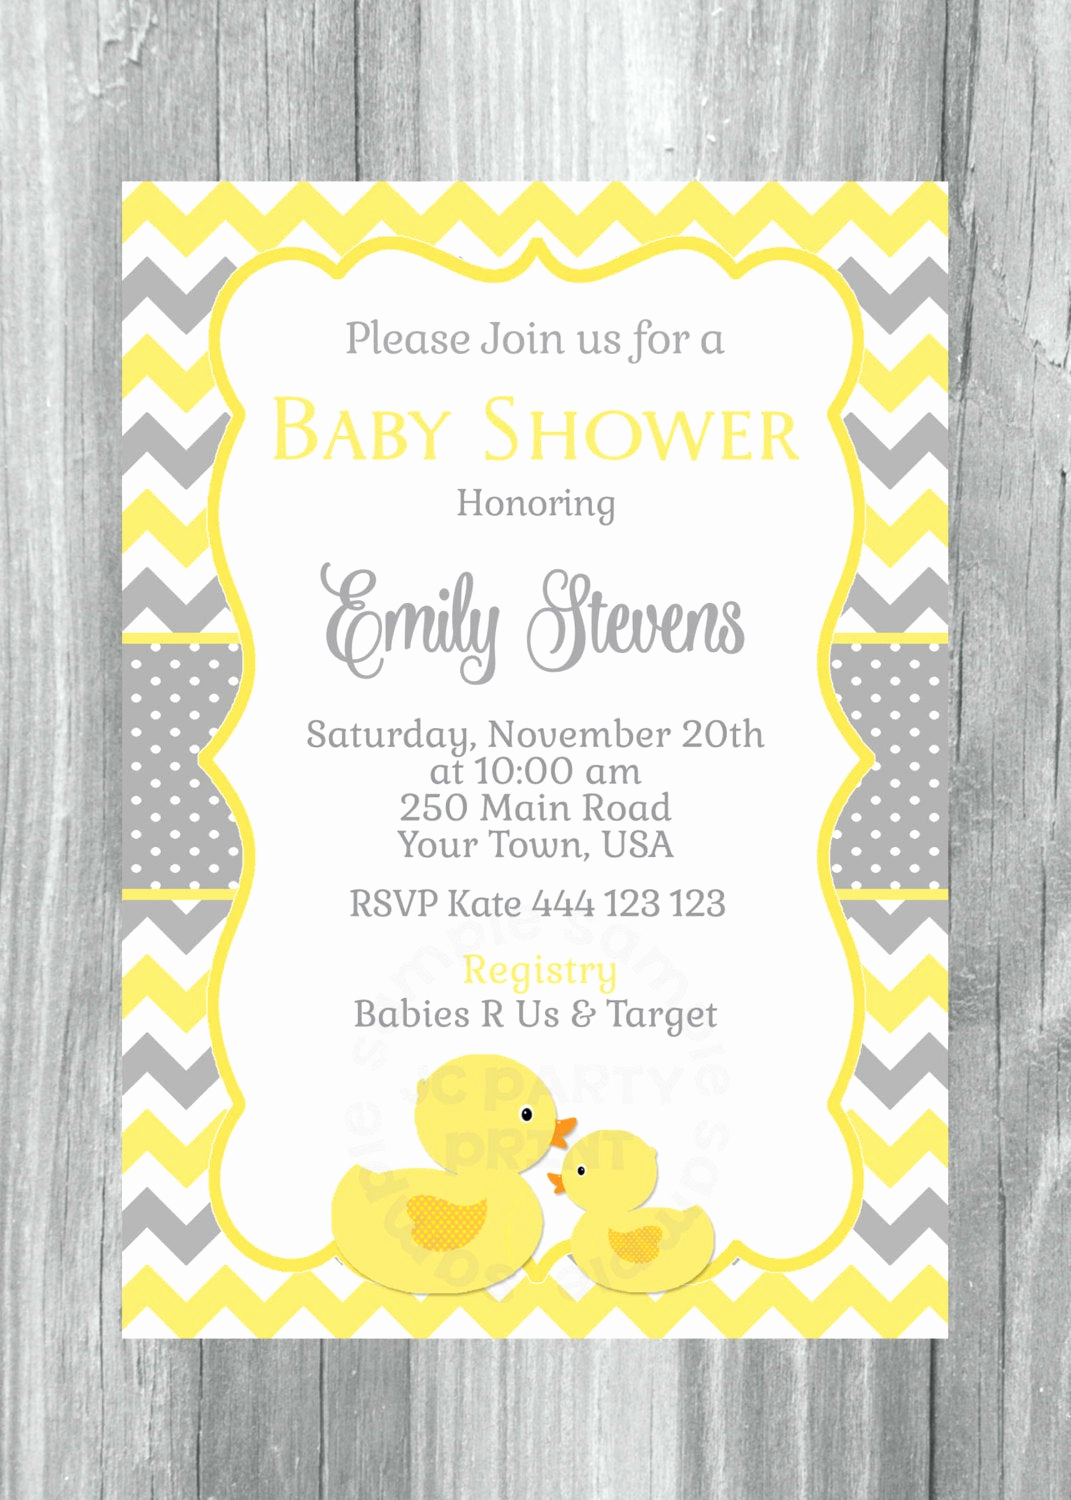 Rubber Duck Baby Shower Invitation Fresh Rubber Ducky Baby Shower Invitation Rubber Duck Yellow and